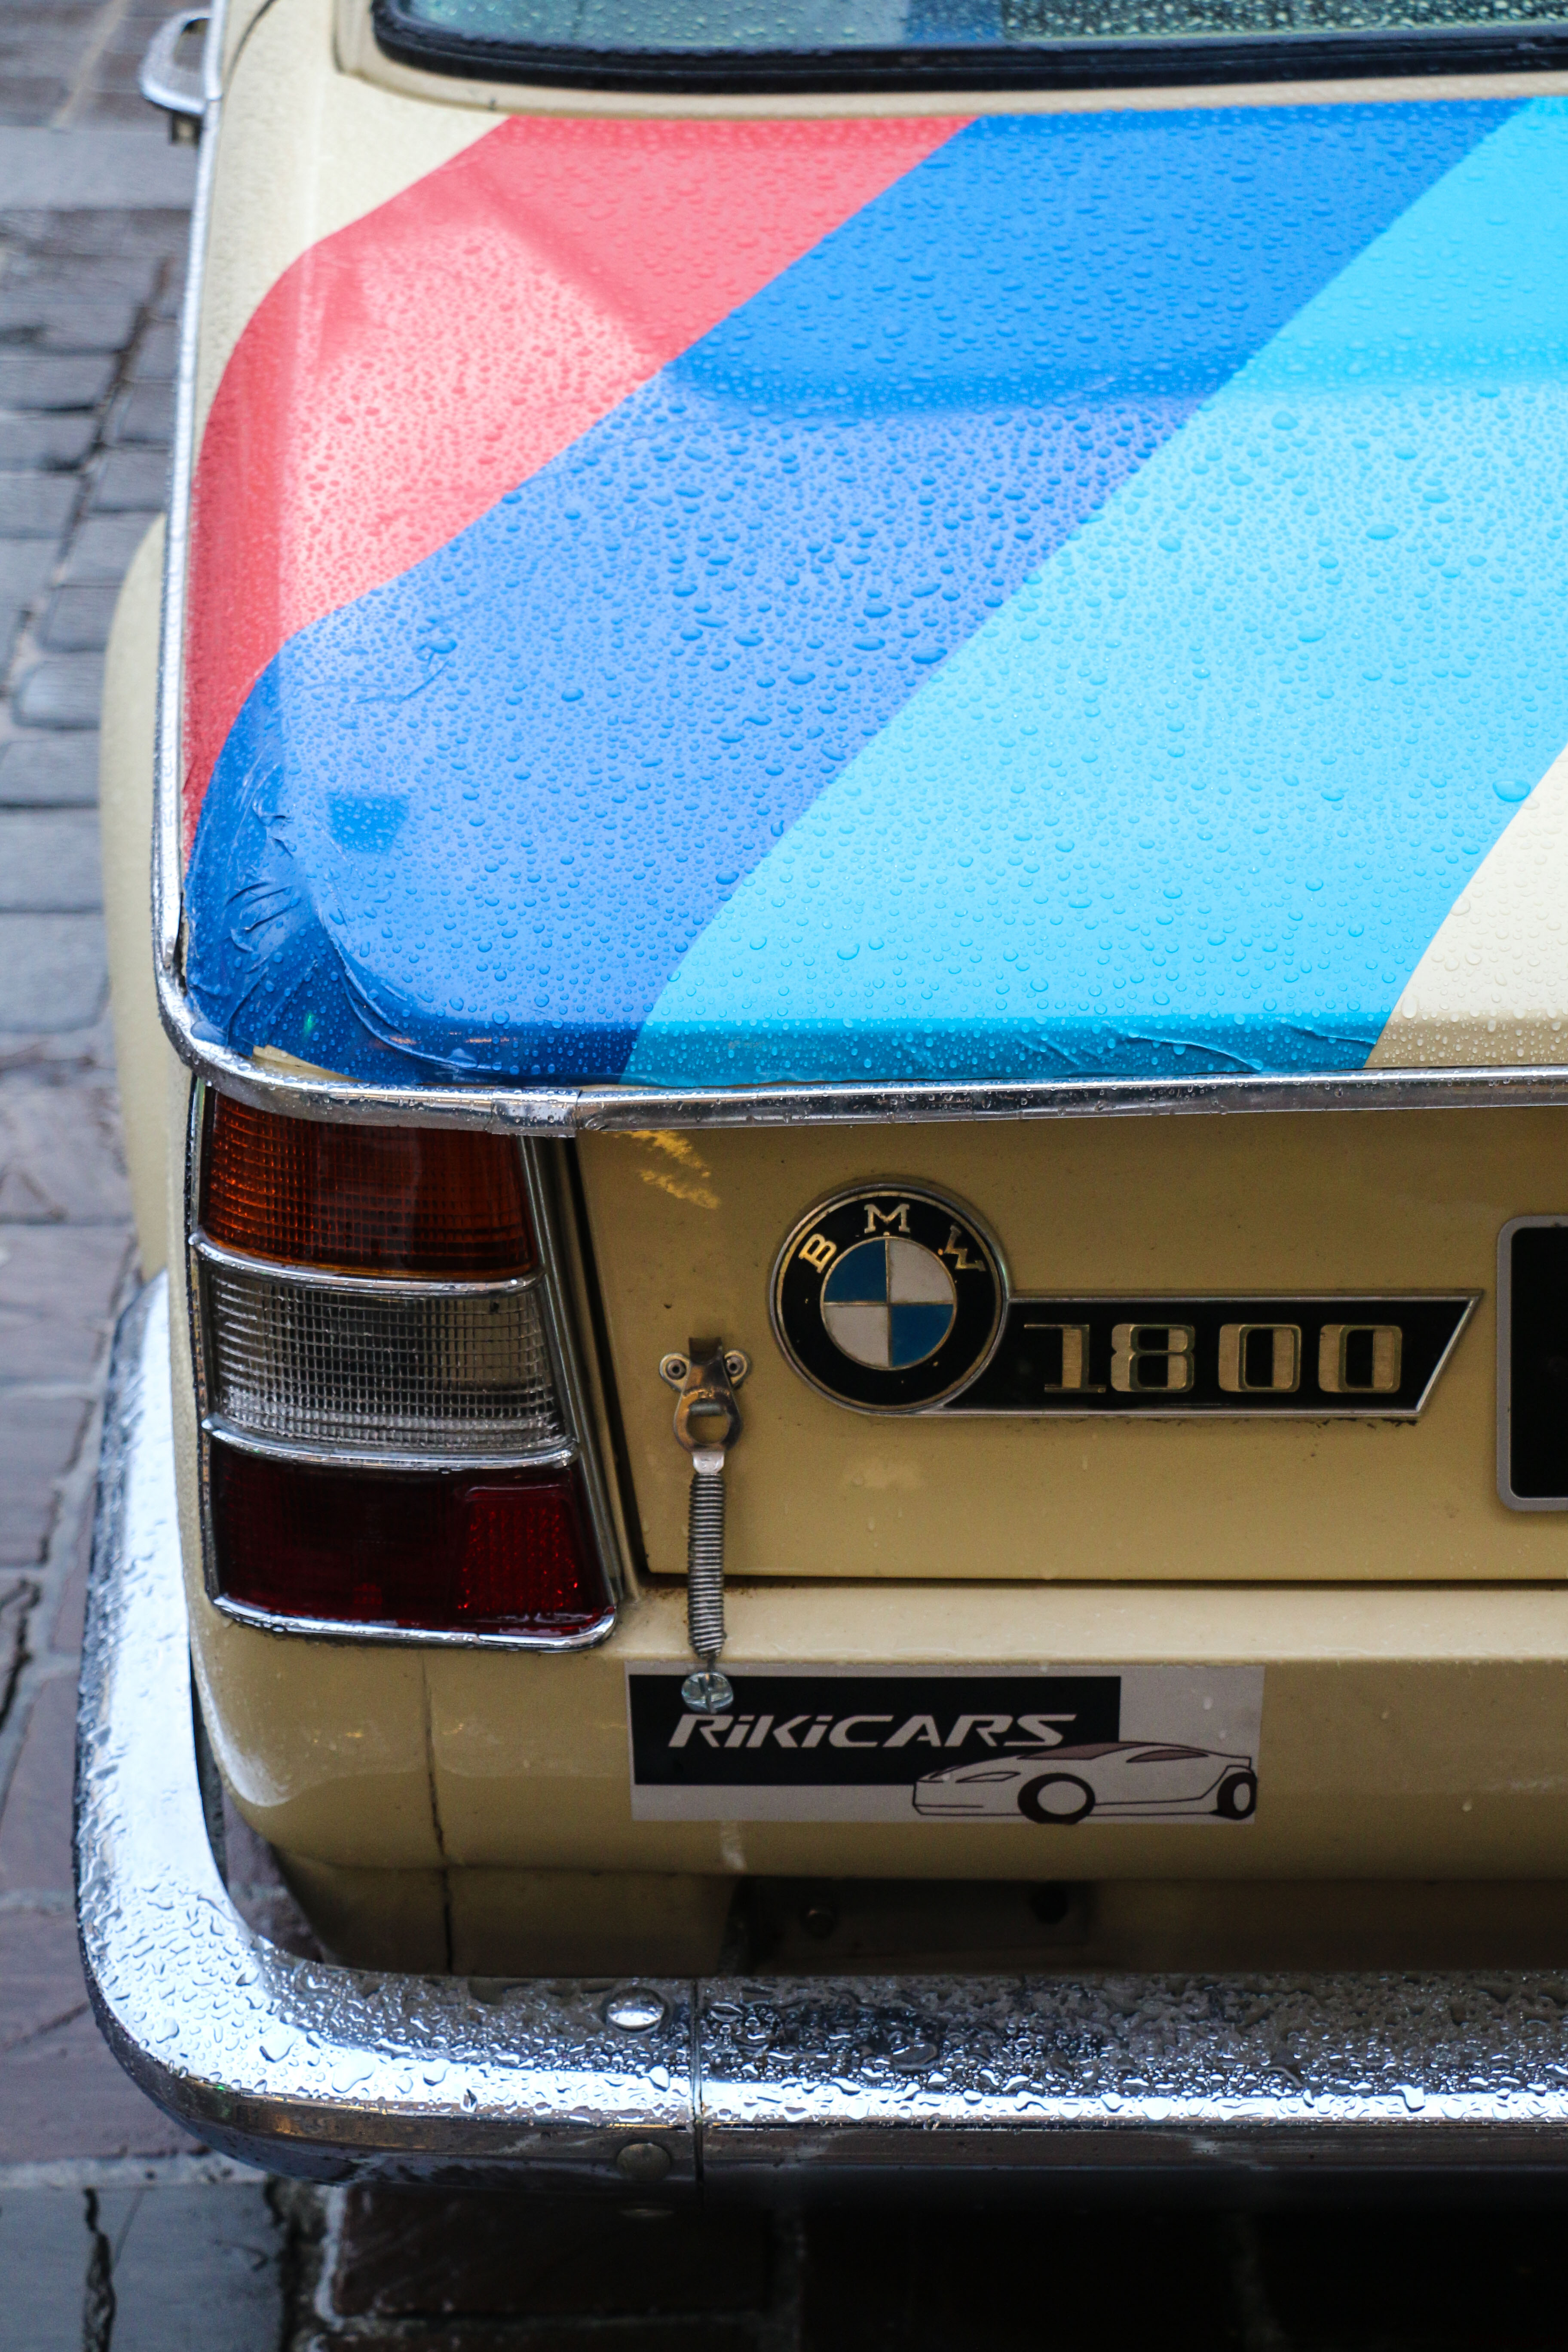 BMW-1800-avant-front-Arnaud Demasier-RSPhotographie